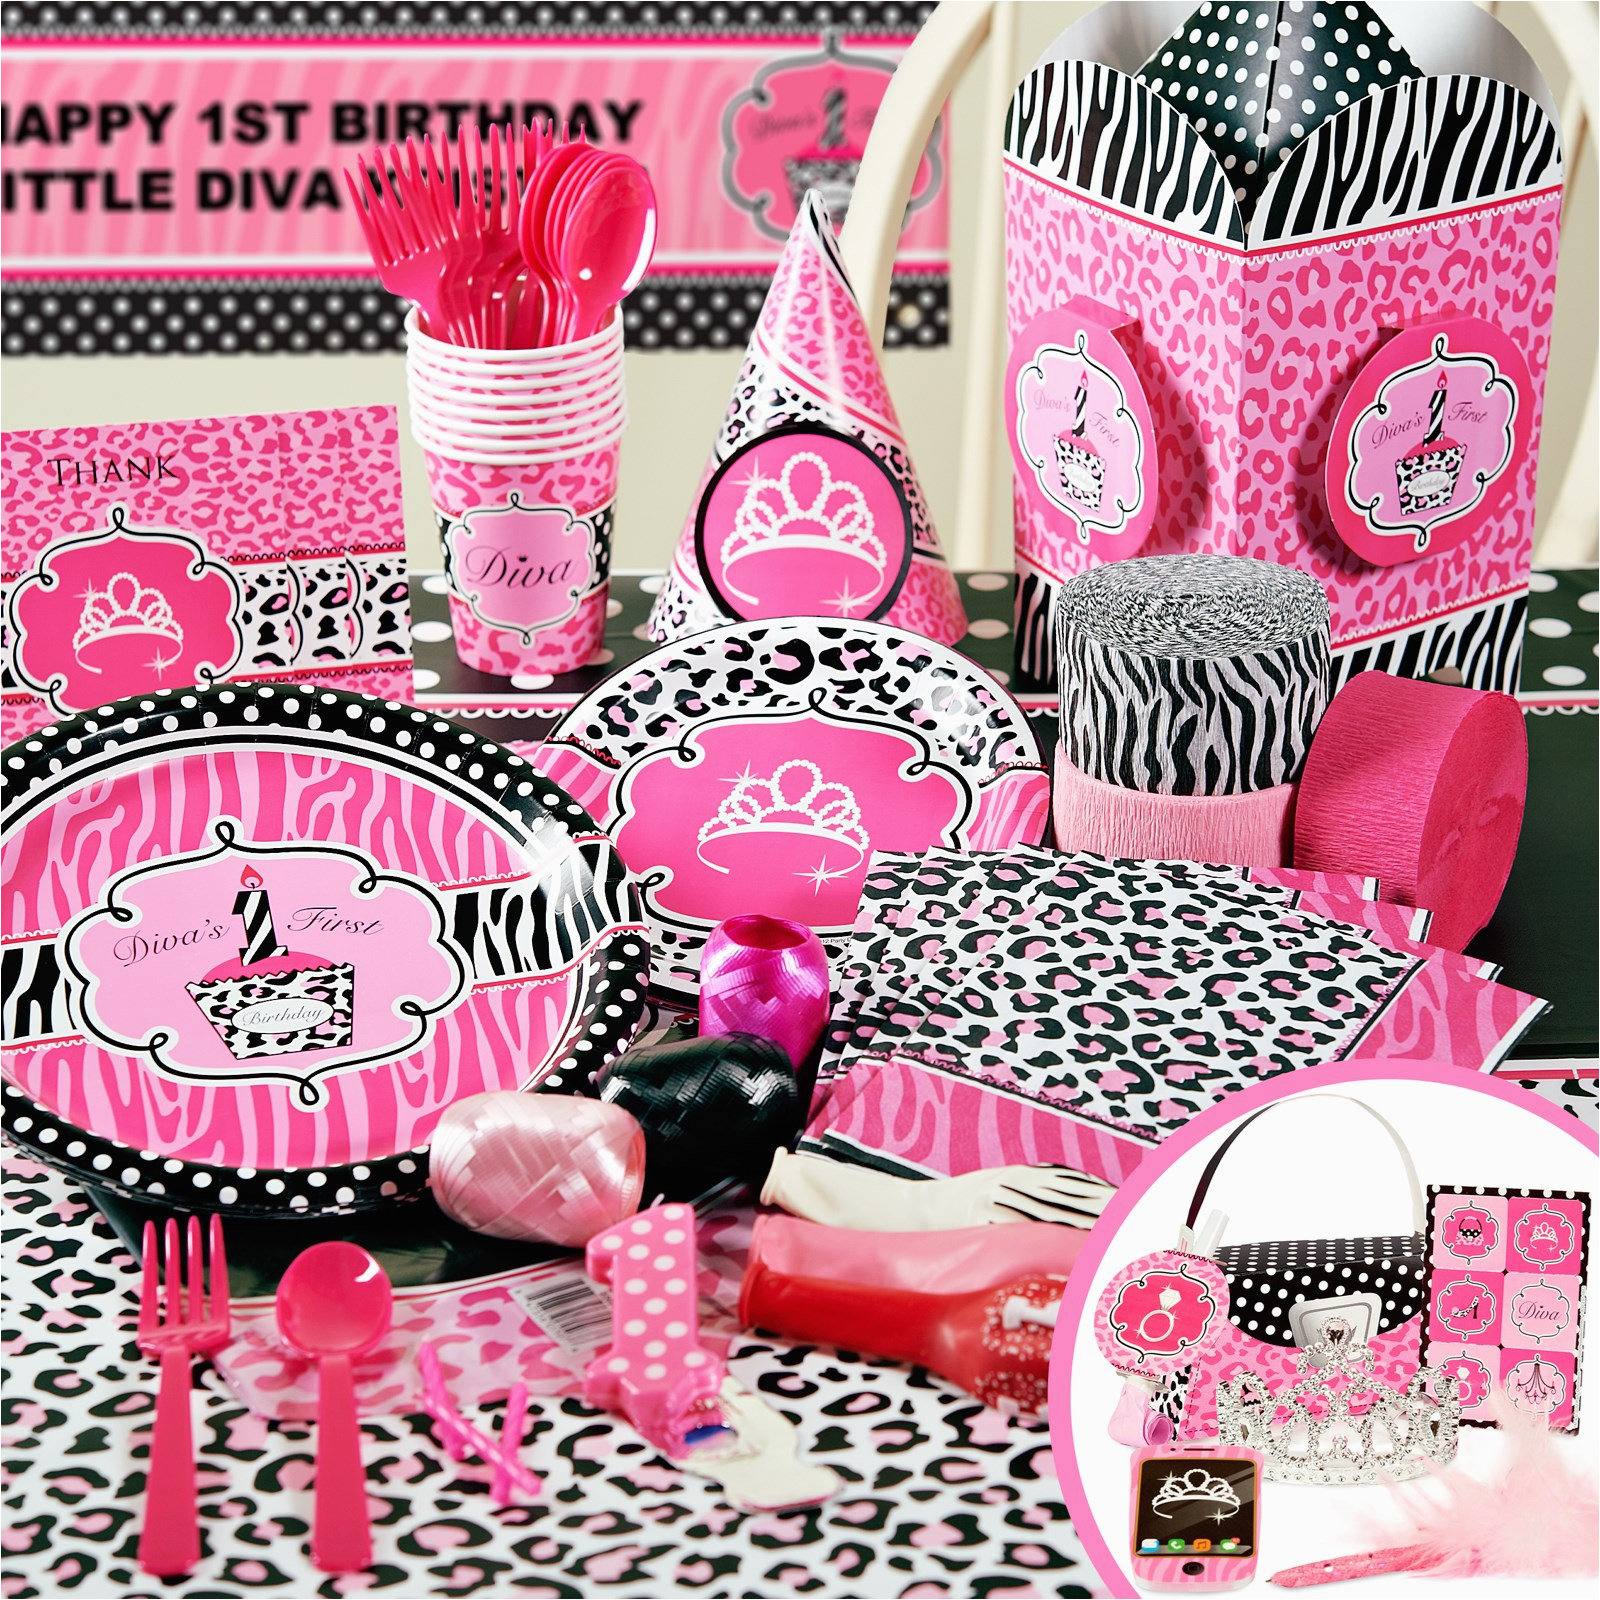 Animal Print Birthday Decorations Zebra Print Party Supplies Party Favors Ideas